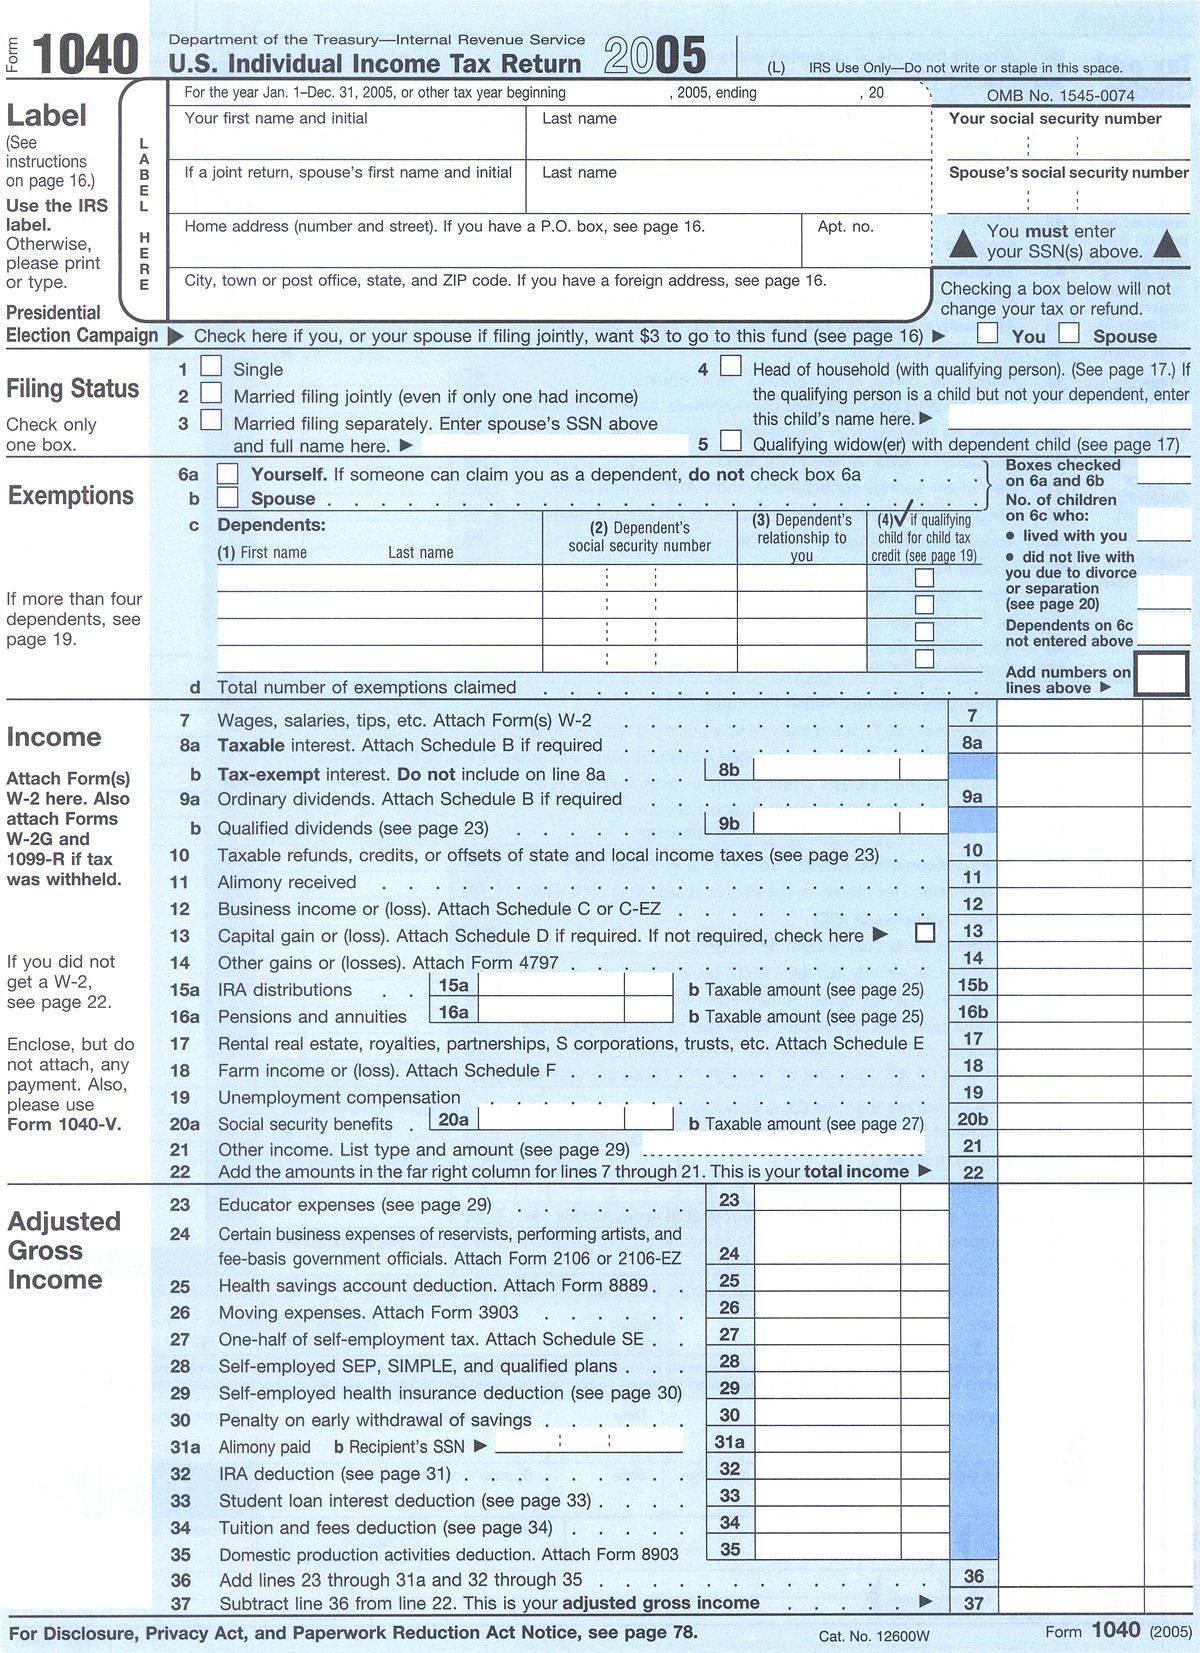 Irs Social Security Worksheet 2015 irs social security worksheet – Irs Social Security Worksheet